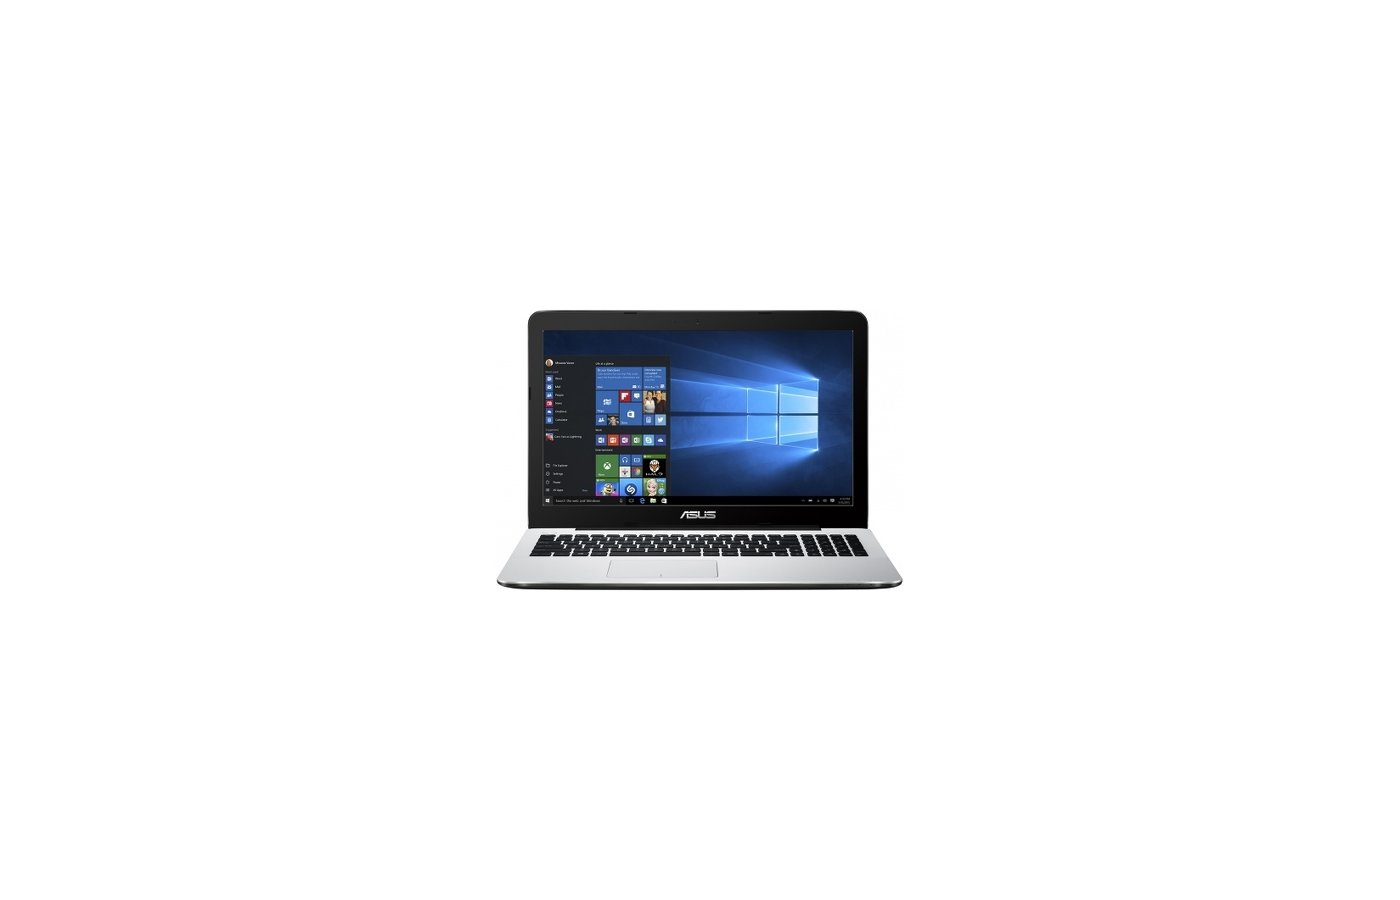 Ноутбук ASUS X555SJ-XX044T /90NB0AK9-M01590/ intel N3700/4Gb/500GB/NV920 1GB/15.6/WiFi/Win10 (White)